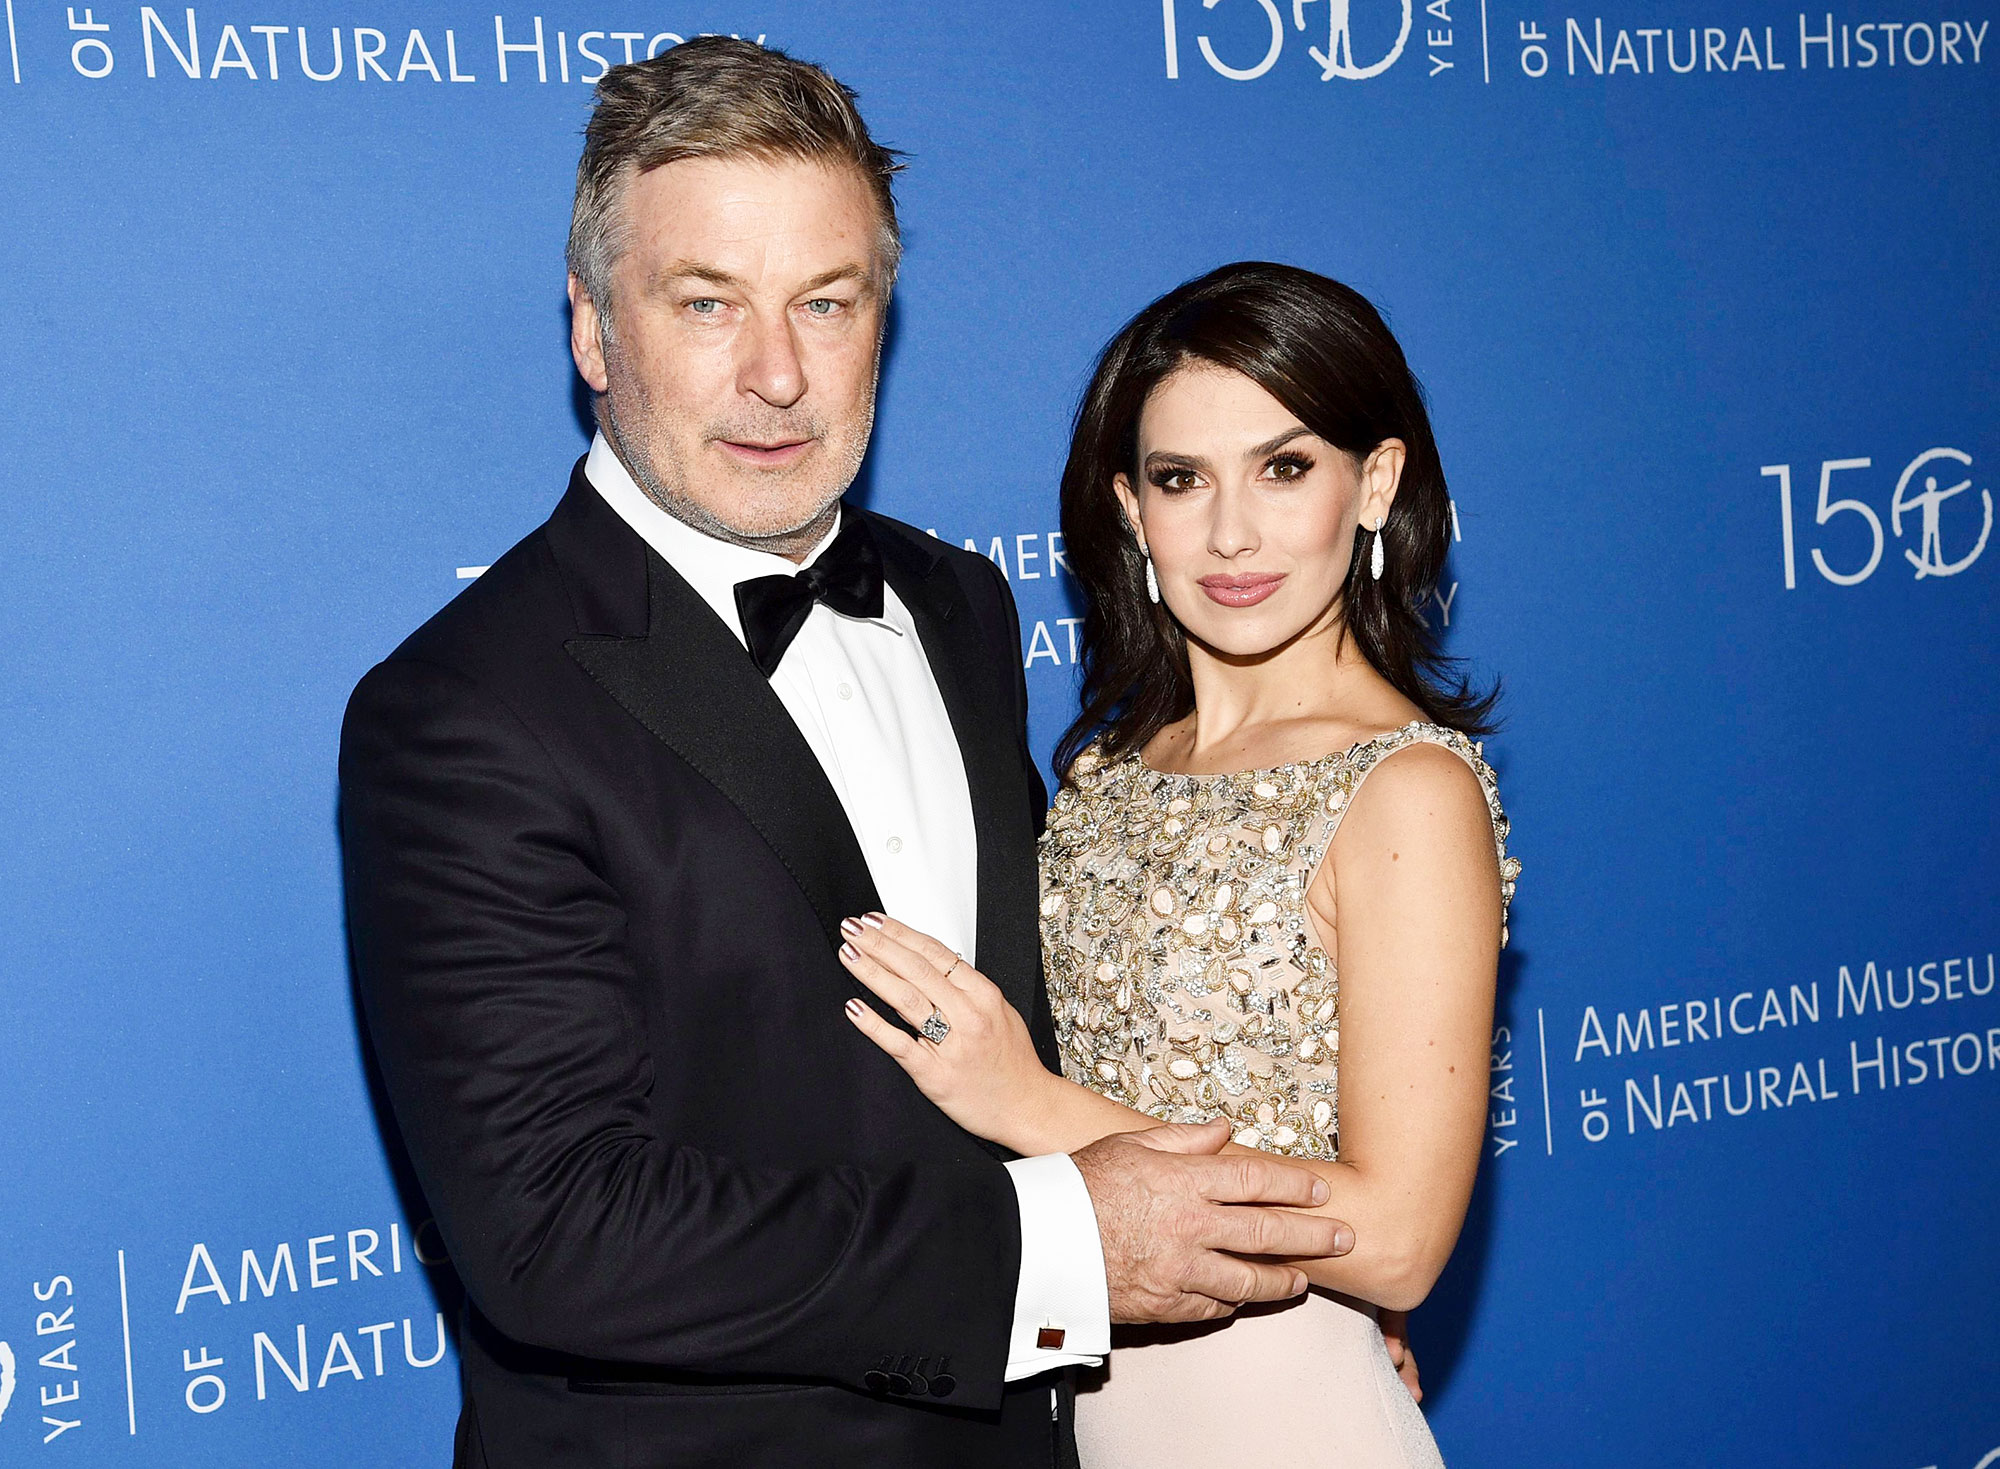 Hilaria Baldwin Gives Birth to 5th Child With Alec Baldwin Following Multiple Miscarriages